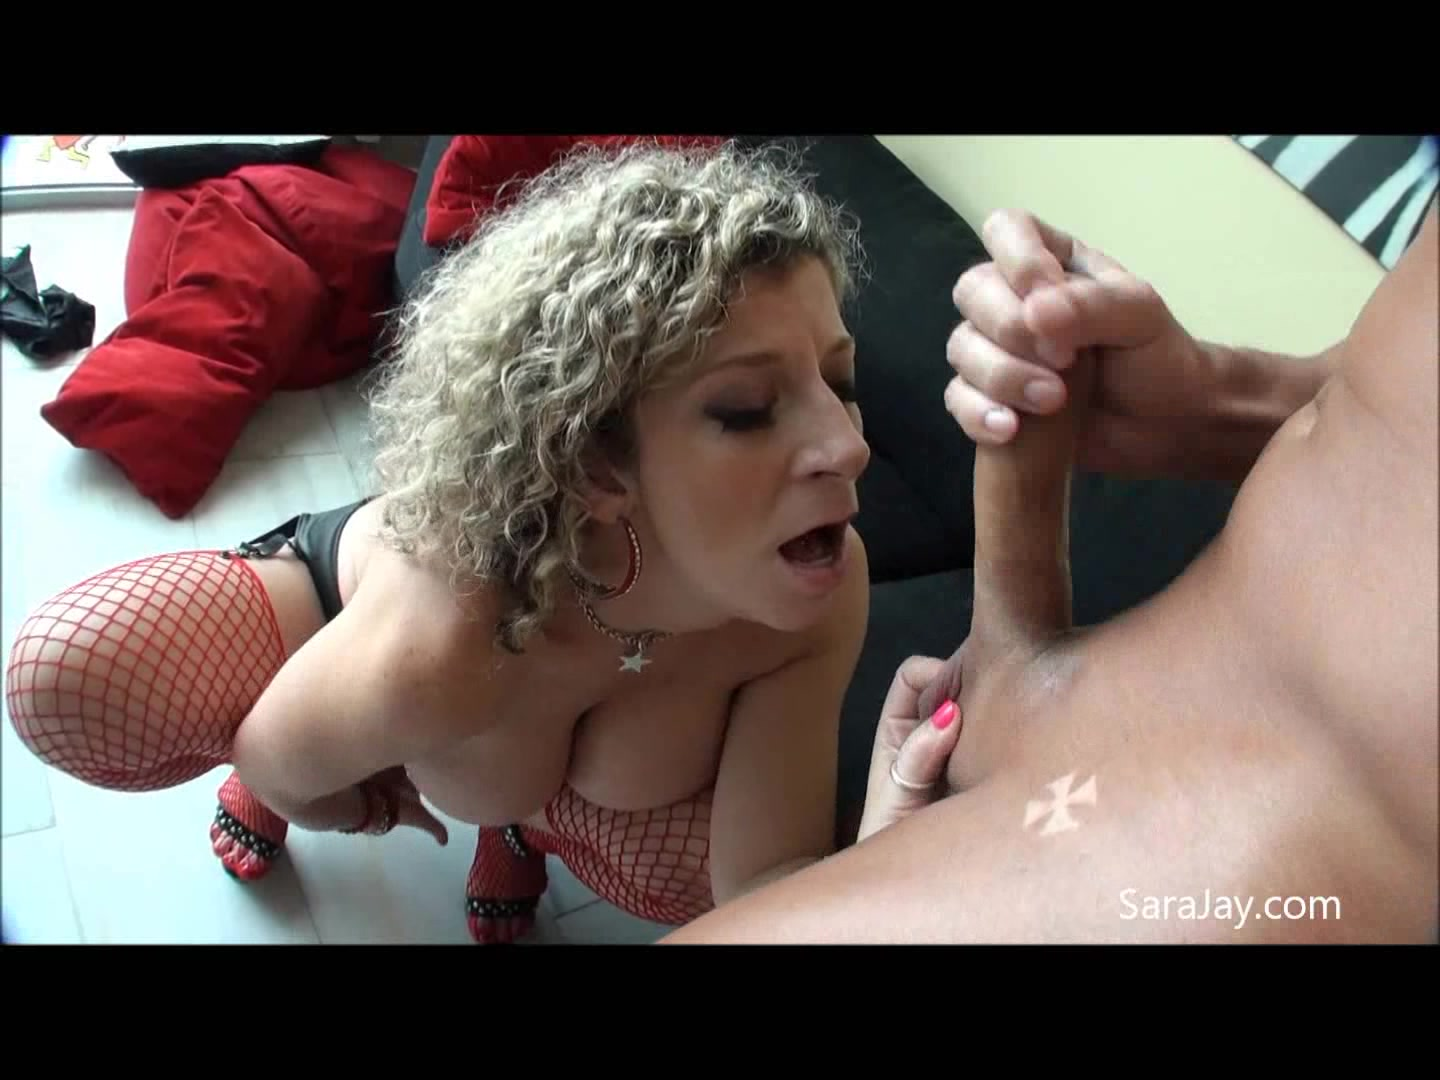 Curly Hair Stockings Porn - Busty Milf With Curly Hair Wearing Red Fishnet Stockings And Black High  Heels Gets Fucked In Different Positions On A Black Couch. - YOUX.XXX